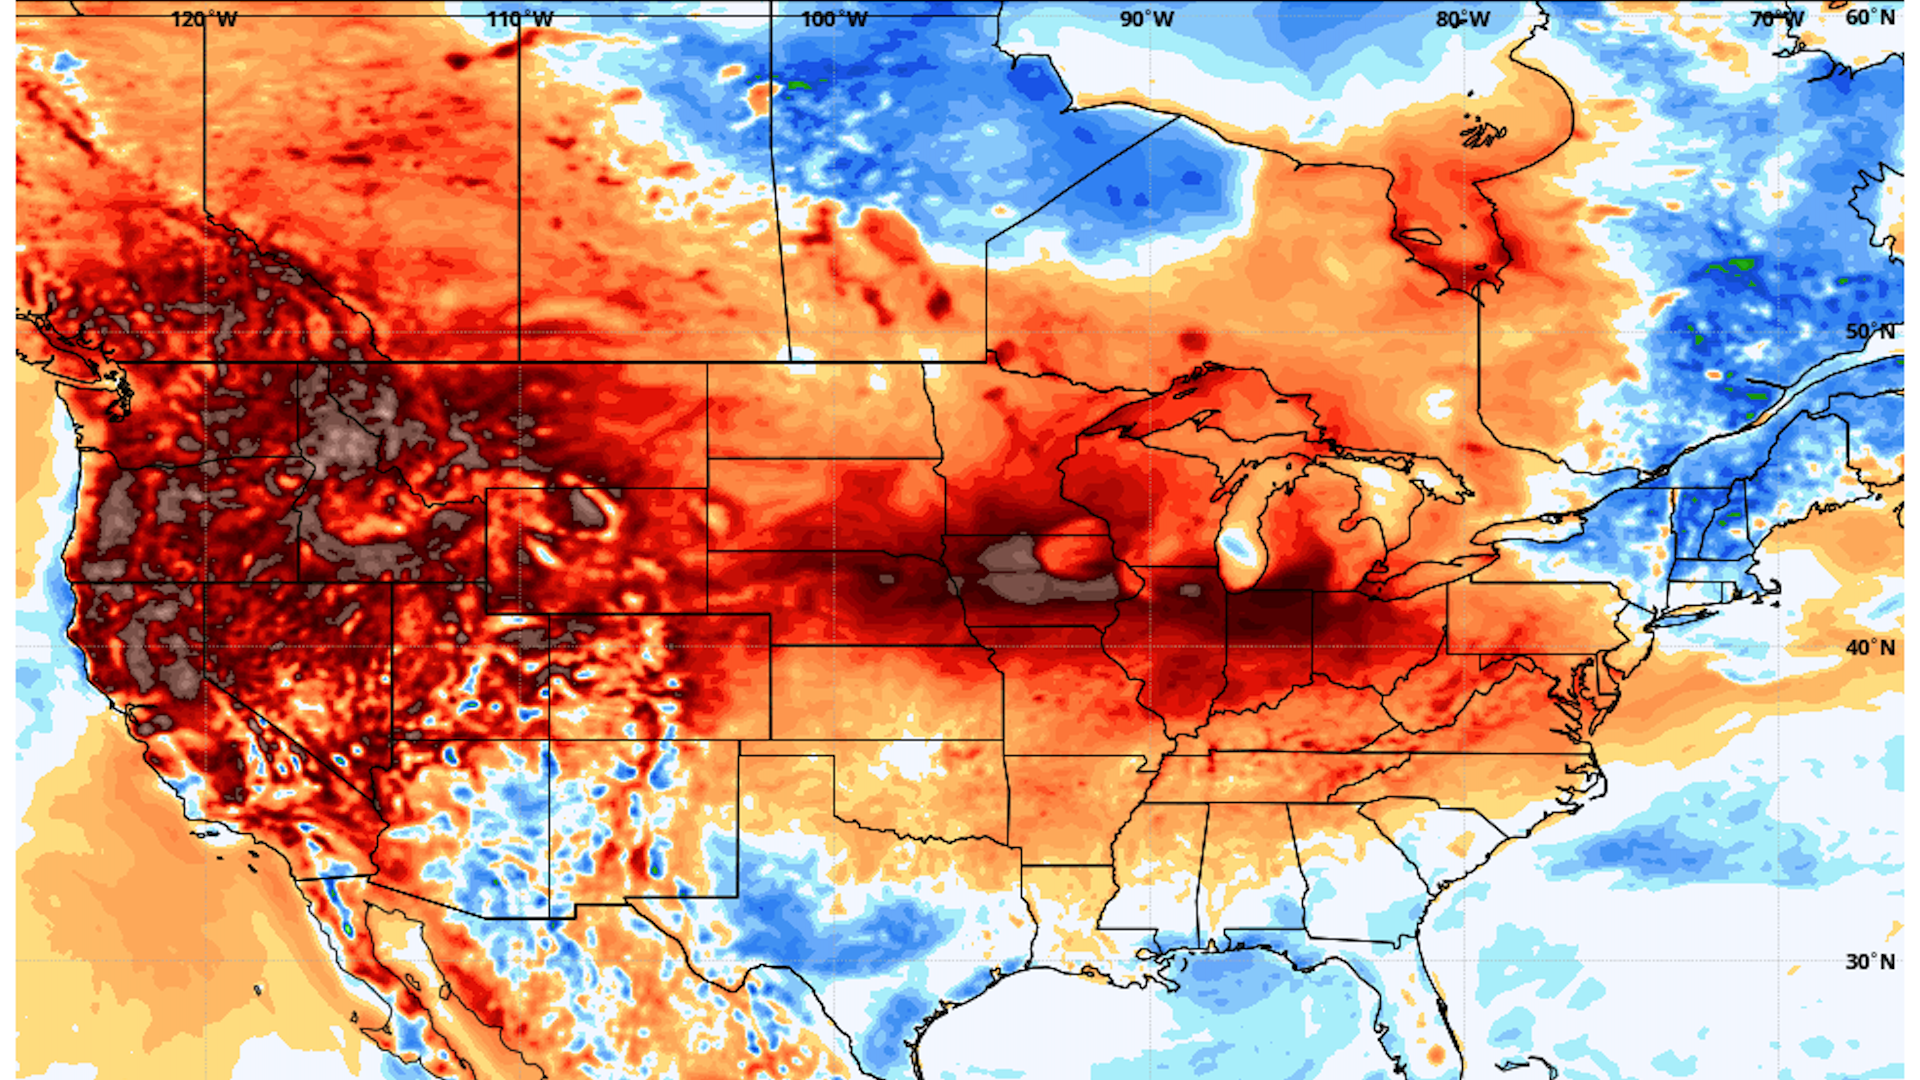 Map showing red hues covering the U.S. and parts of Canada as another heat wave hits the region.